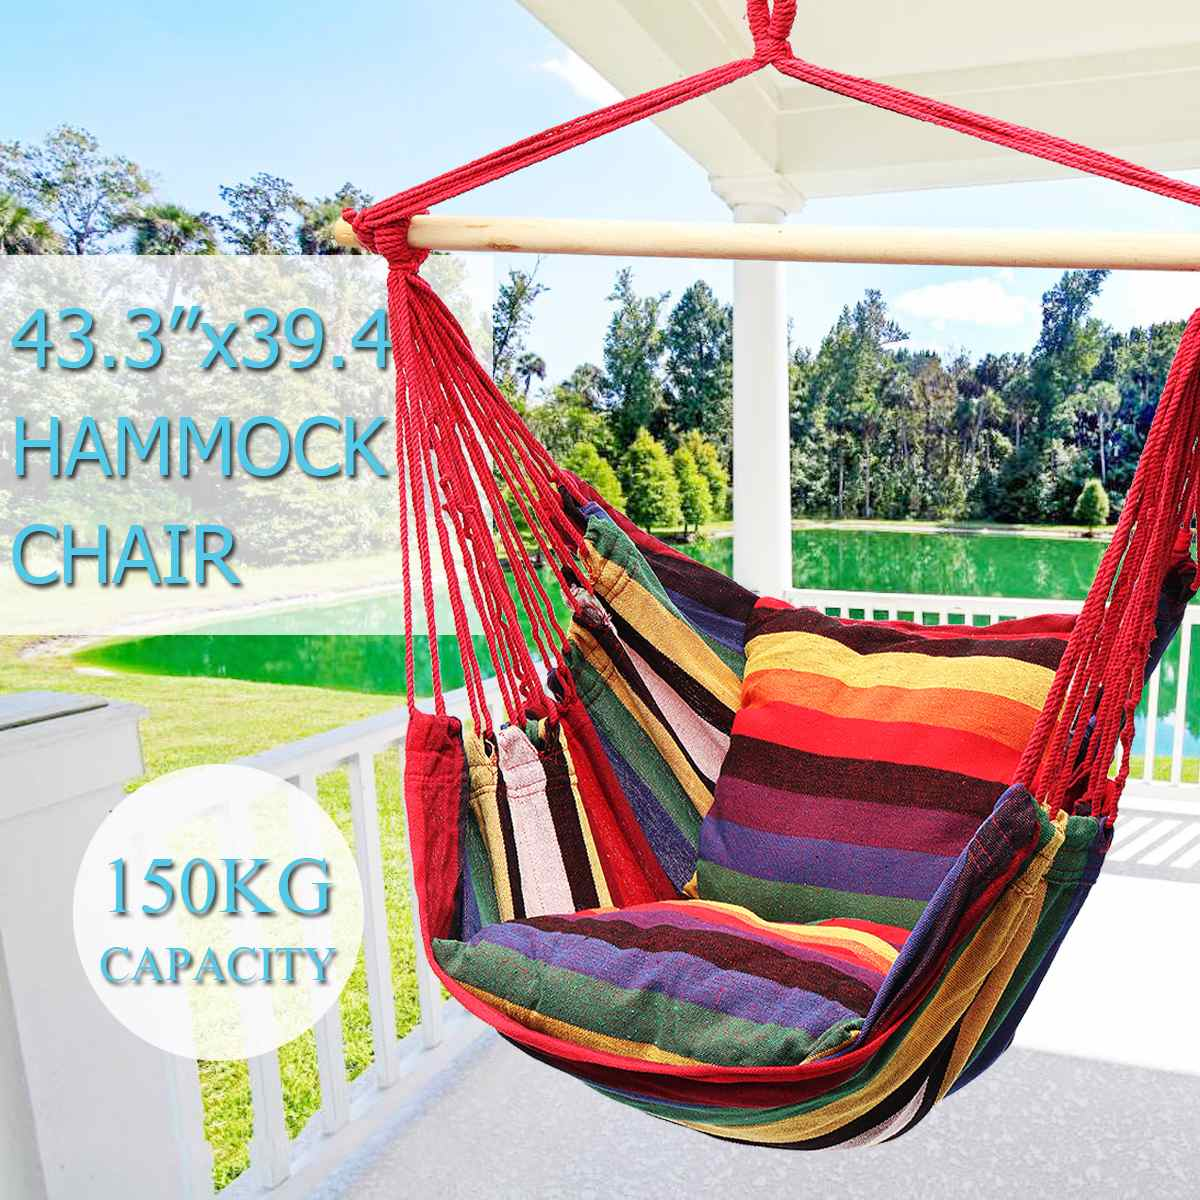 Hammock Chair Swing Chair Seat Travel Camping Hammock Outdoor Garden Adults Kids Hanging Chair With Pillow